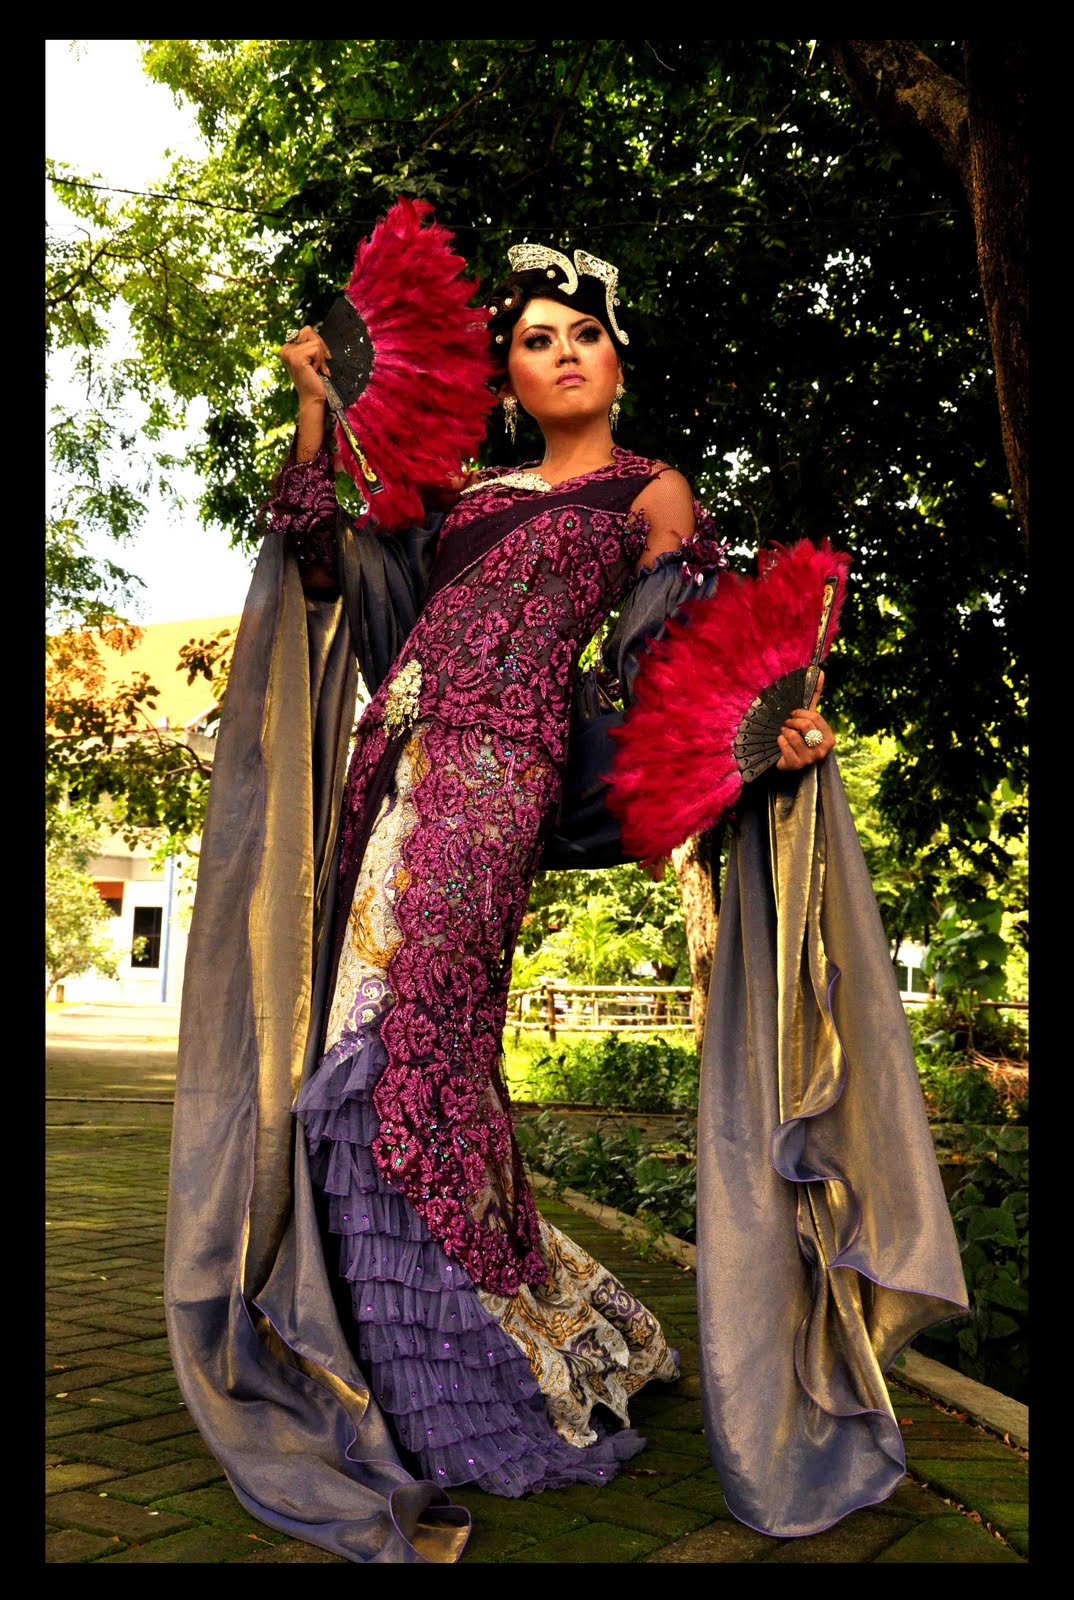 www.annisafebby.co.nr: Indonesia Glamour Outdoor